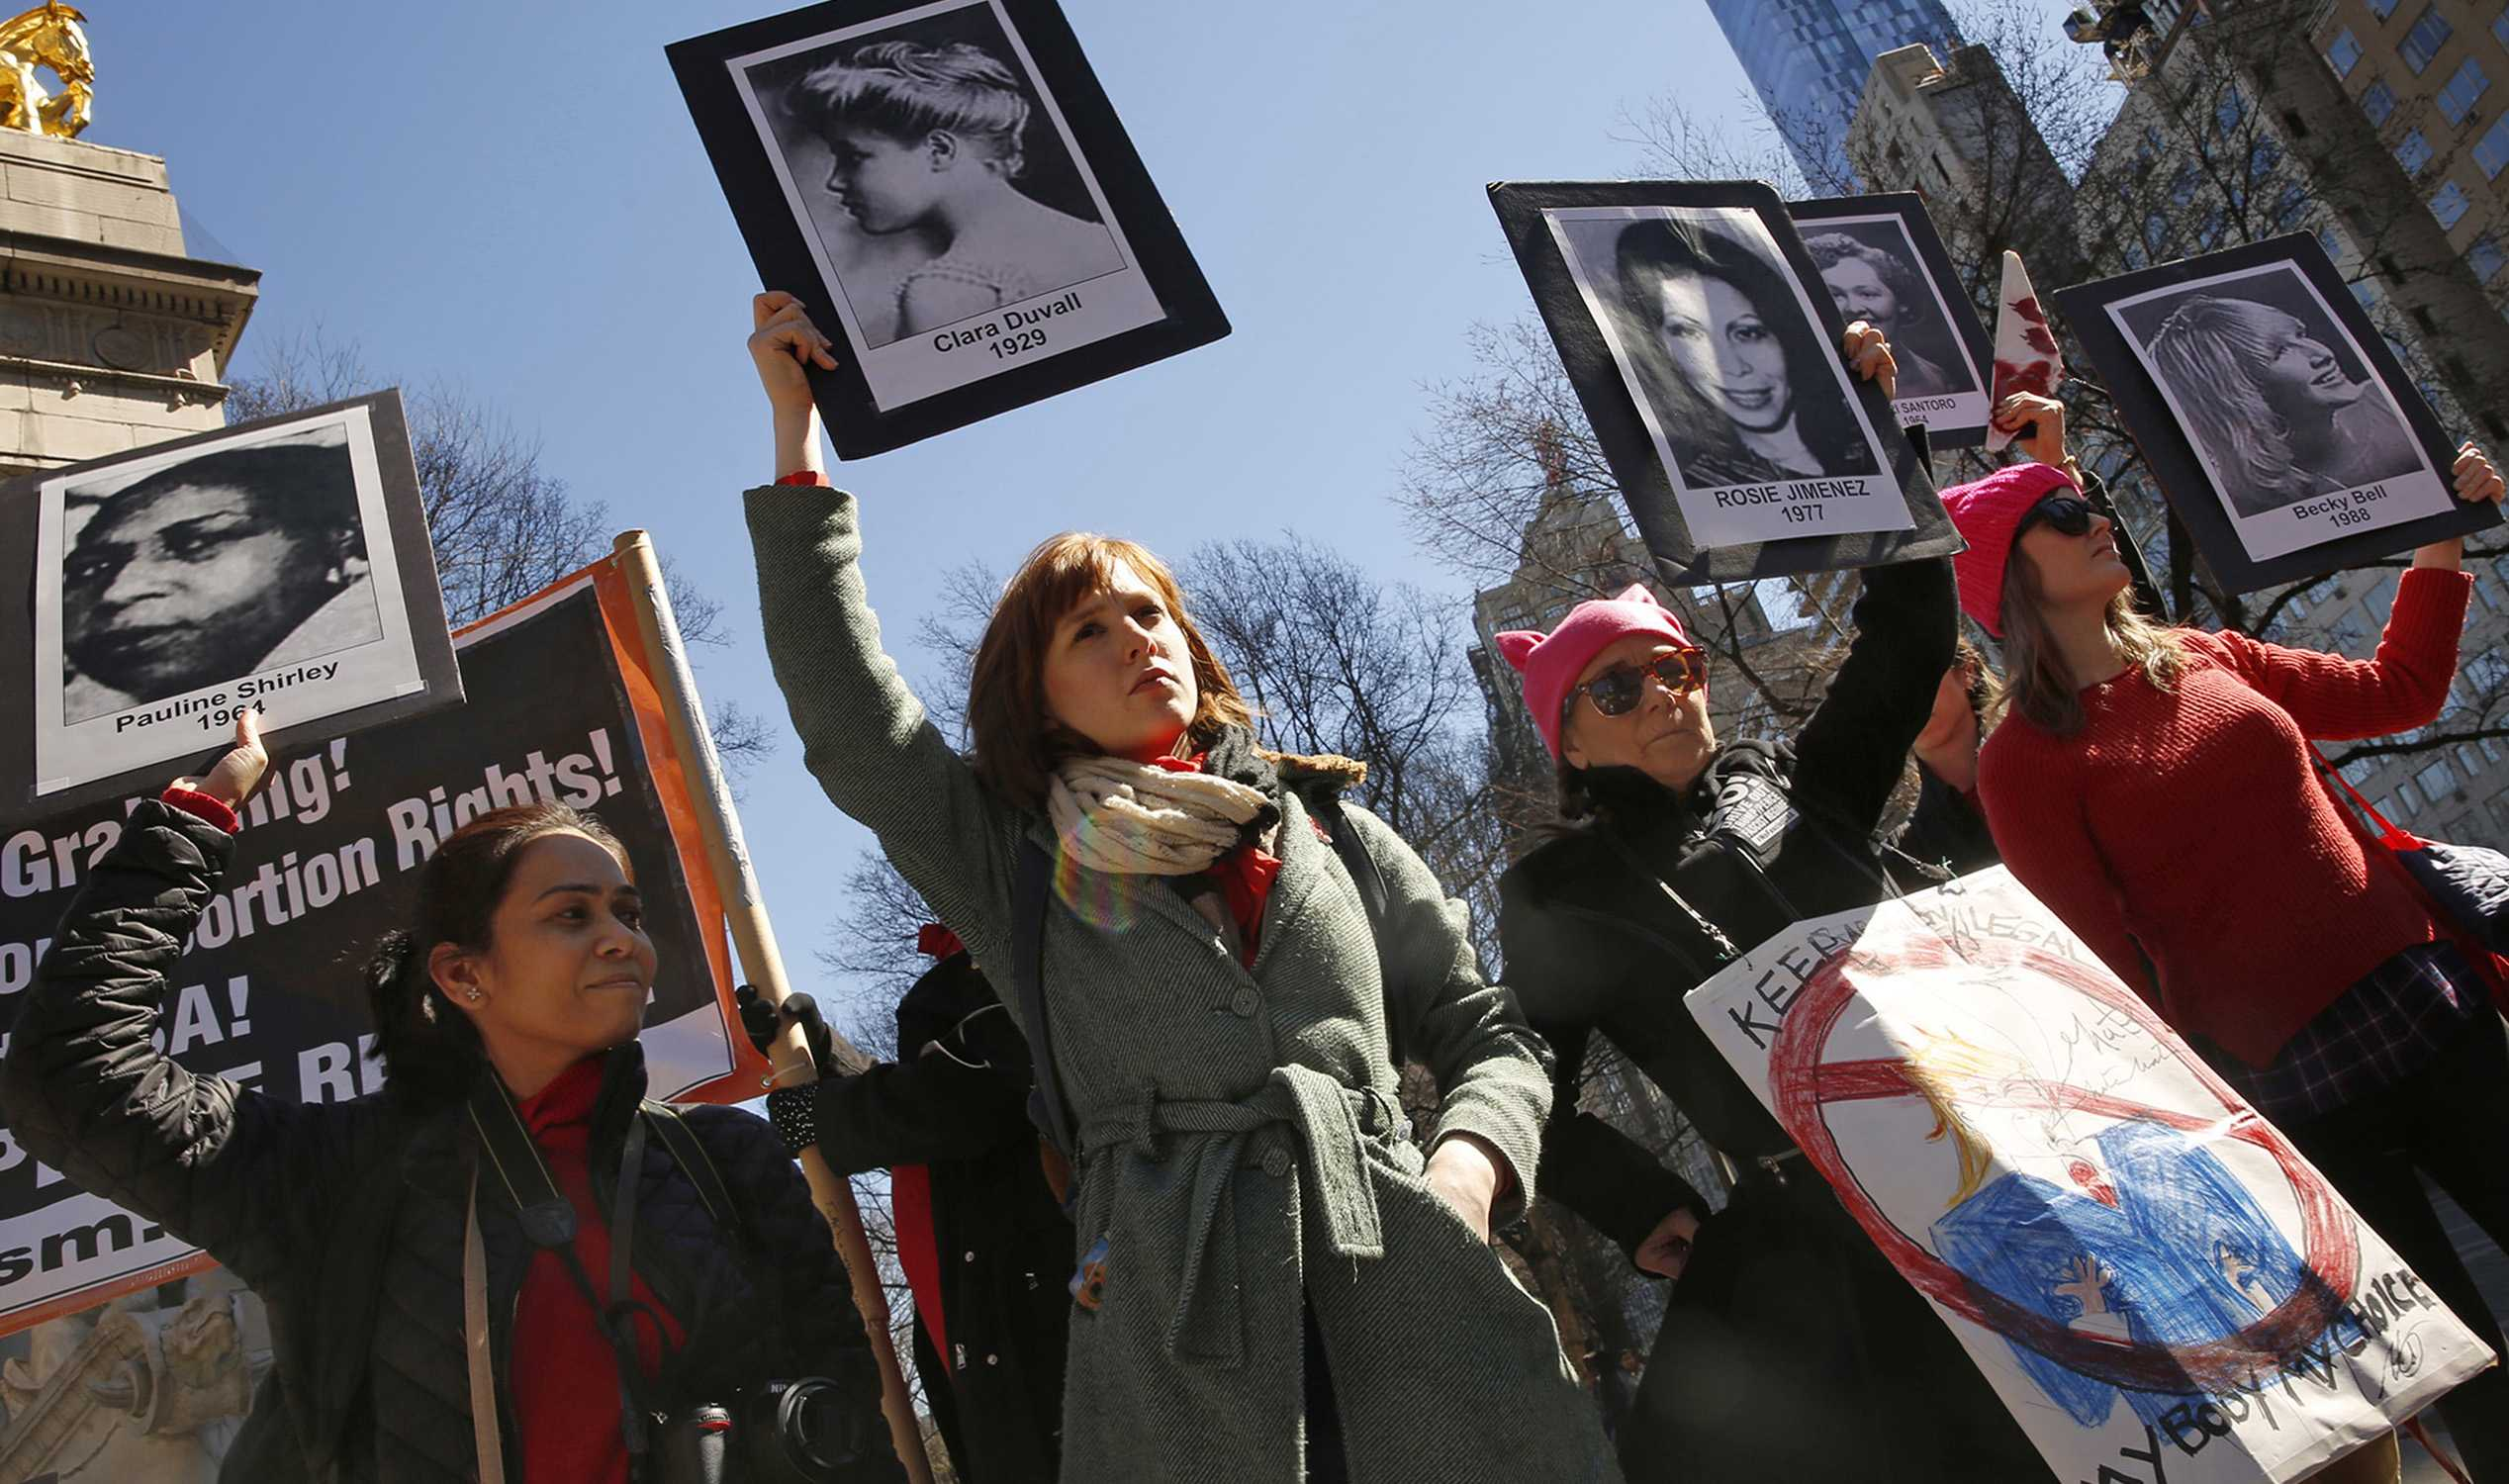 On International Women's Day, about 50 people gather on the edge of Central Park in New York to voice their opposition to the current administration policies. A group holds photographs of women who have died due to illegal abortions or no access to health care. (Carolyn Cole/Los Angeles Times/TNS)